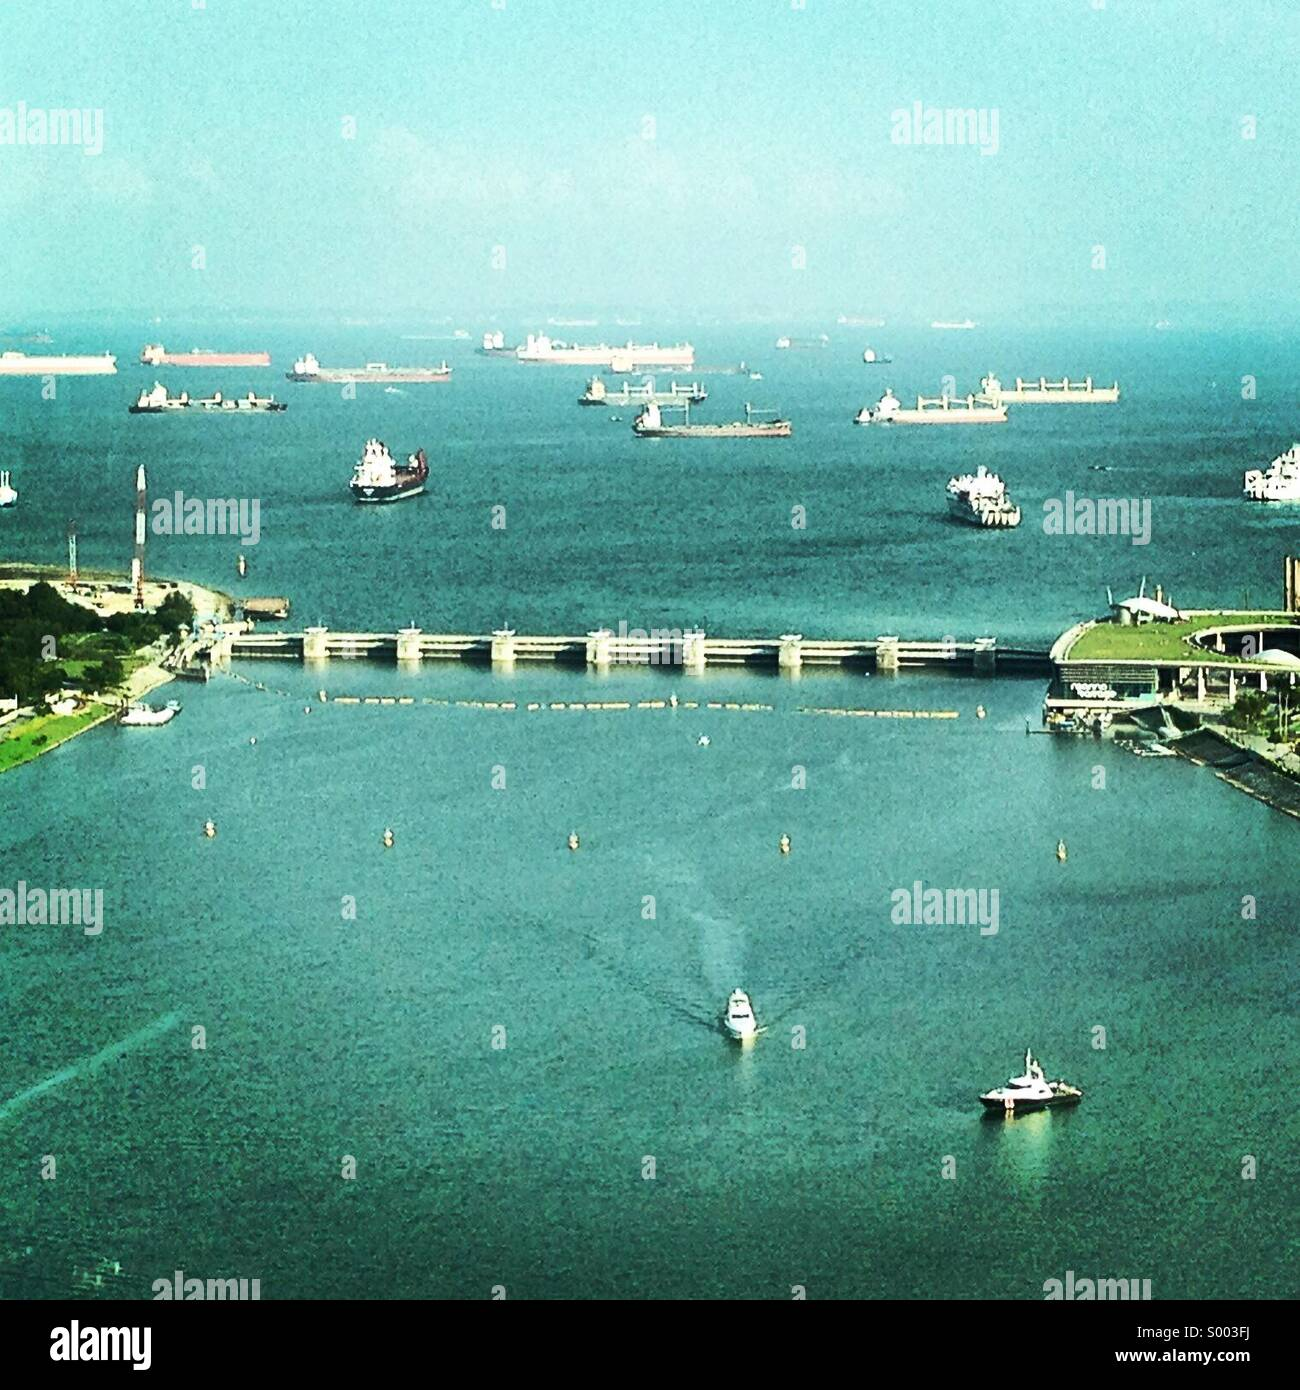 Ships waiting at the port in Singapore - Stock Image